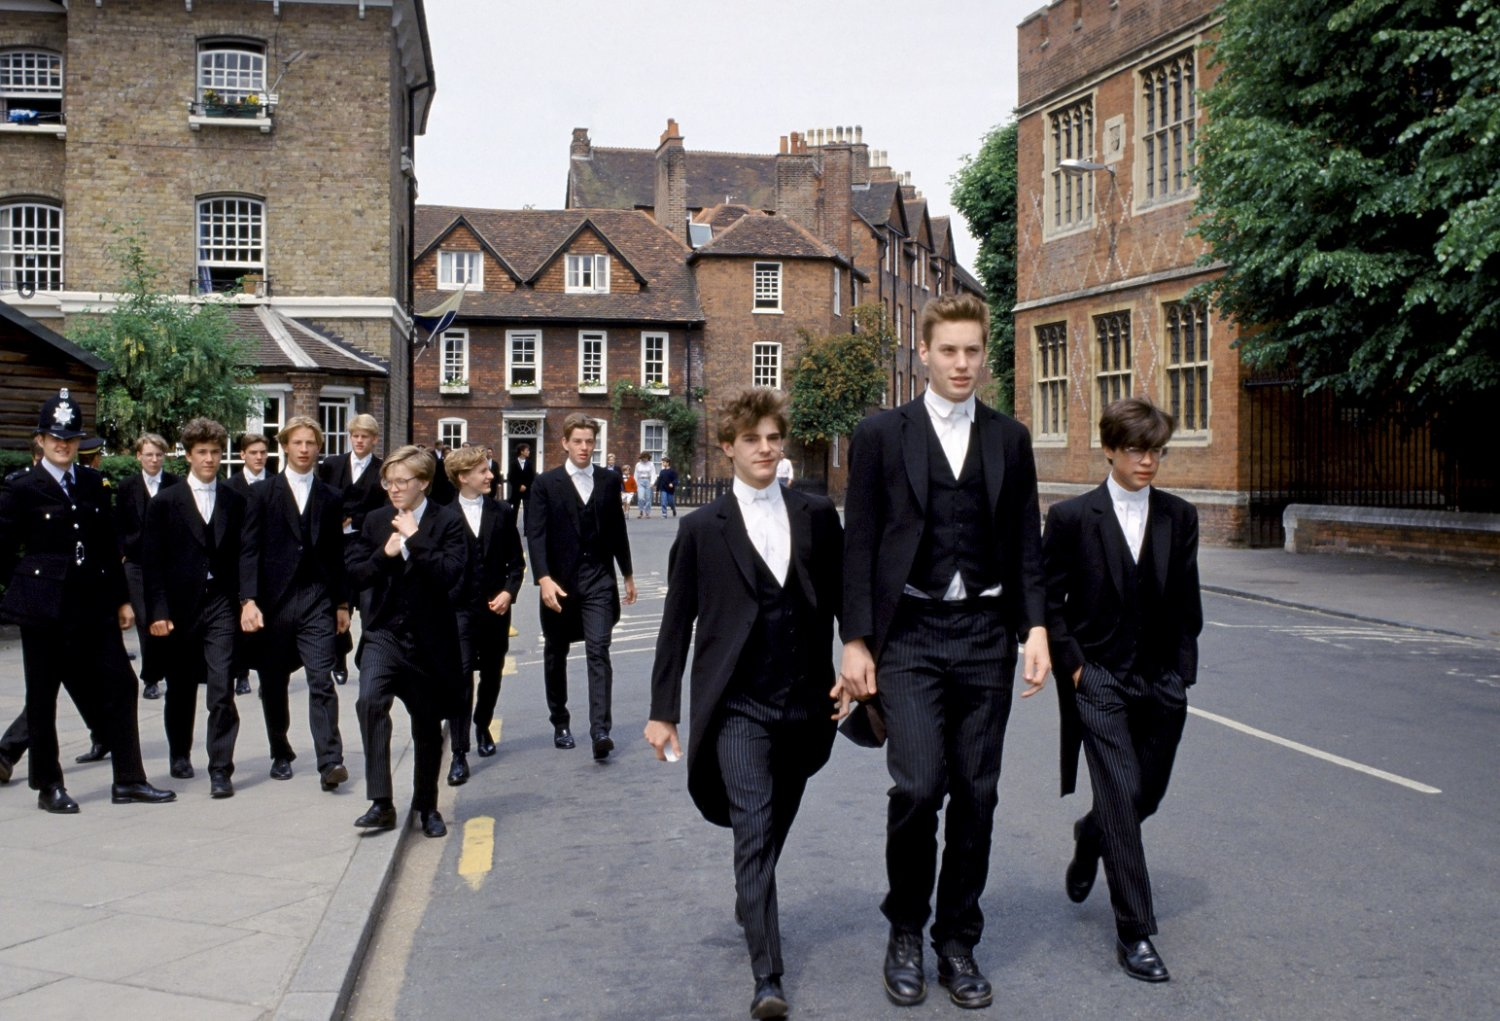 Os jovens e elegantes rapazes do Eton College no intervalo entre as aulas. Foto TIM GRAHAM / Robert Harding Heritage